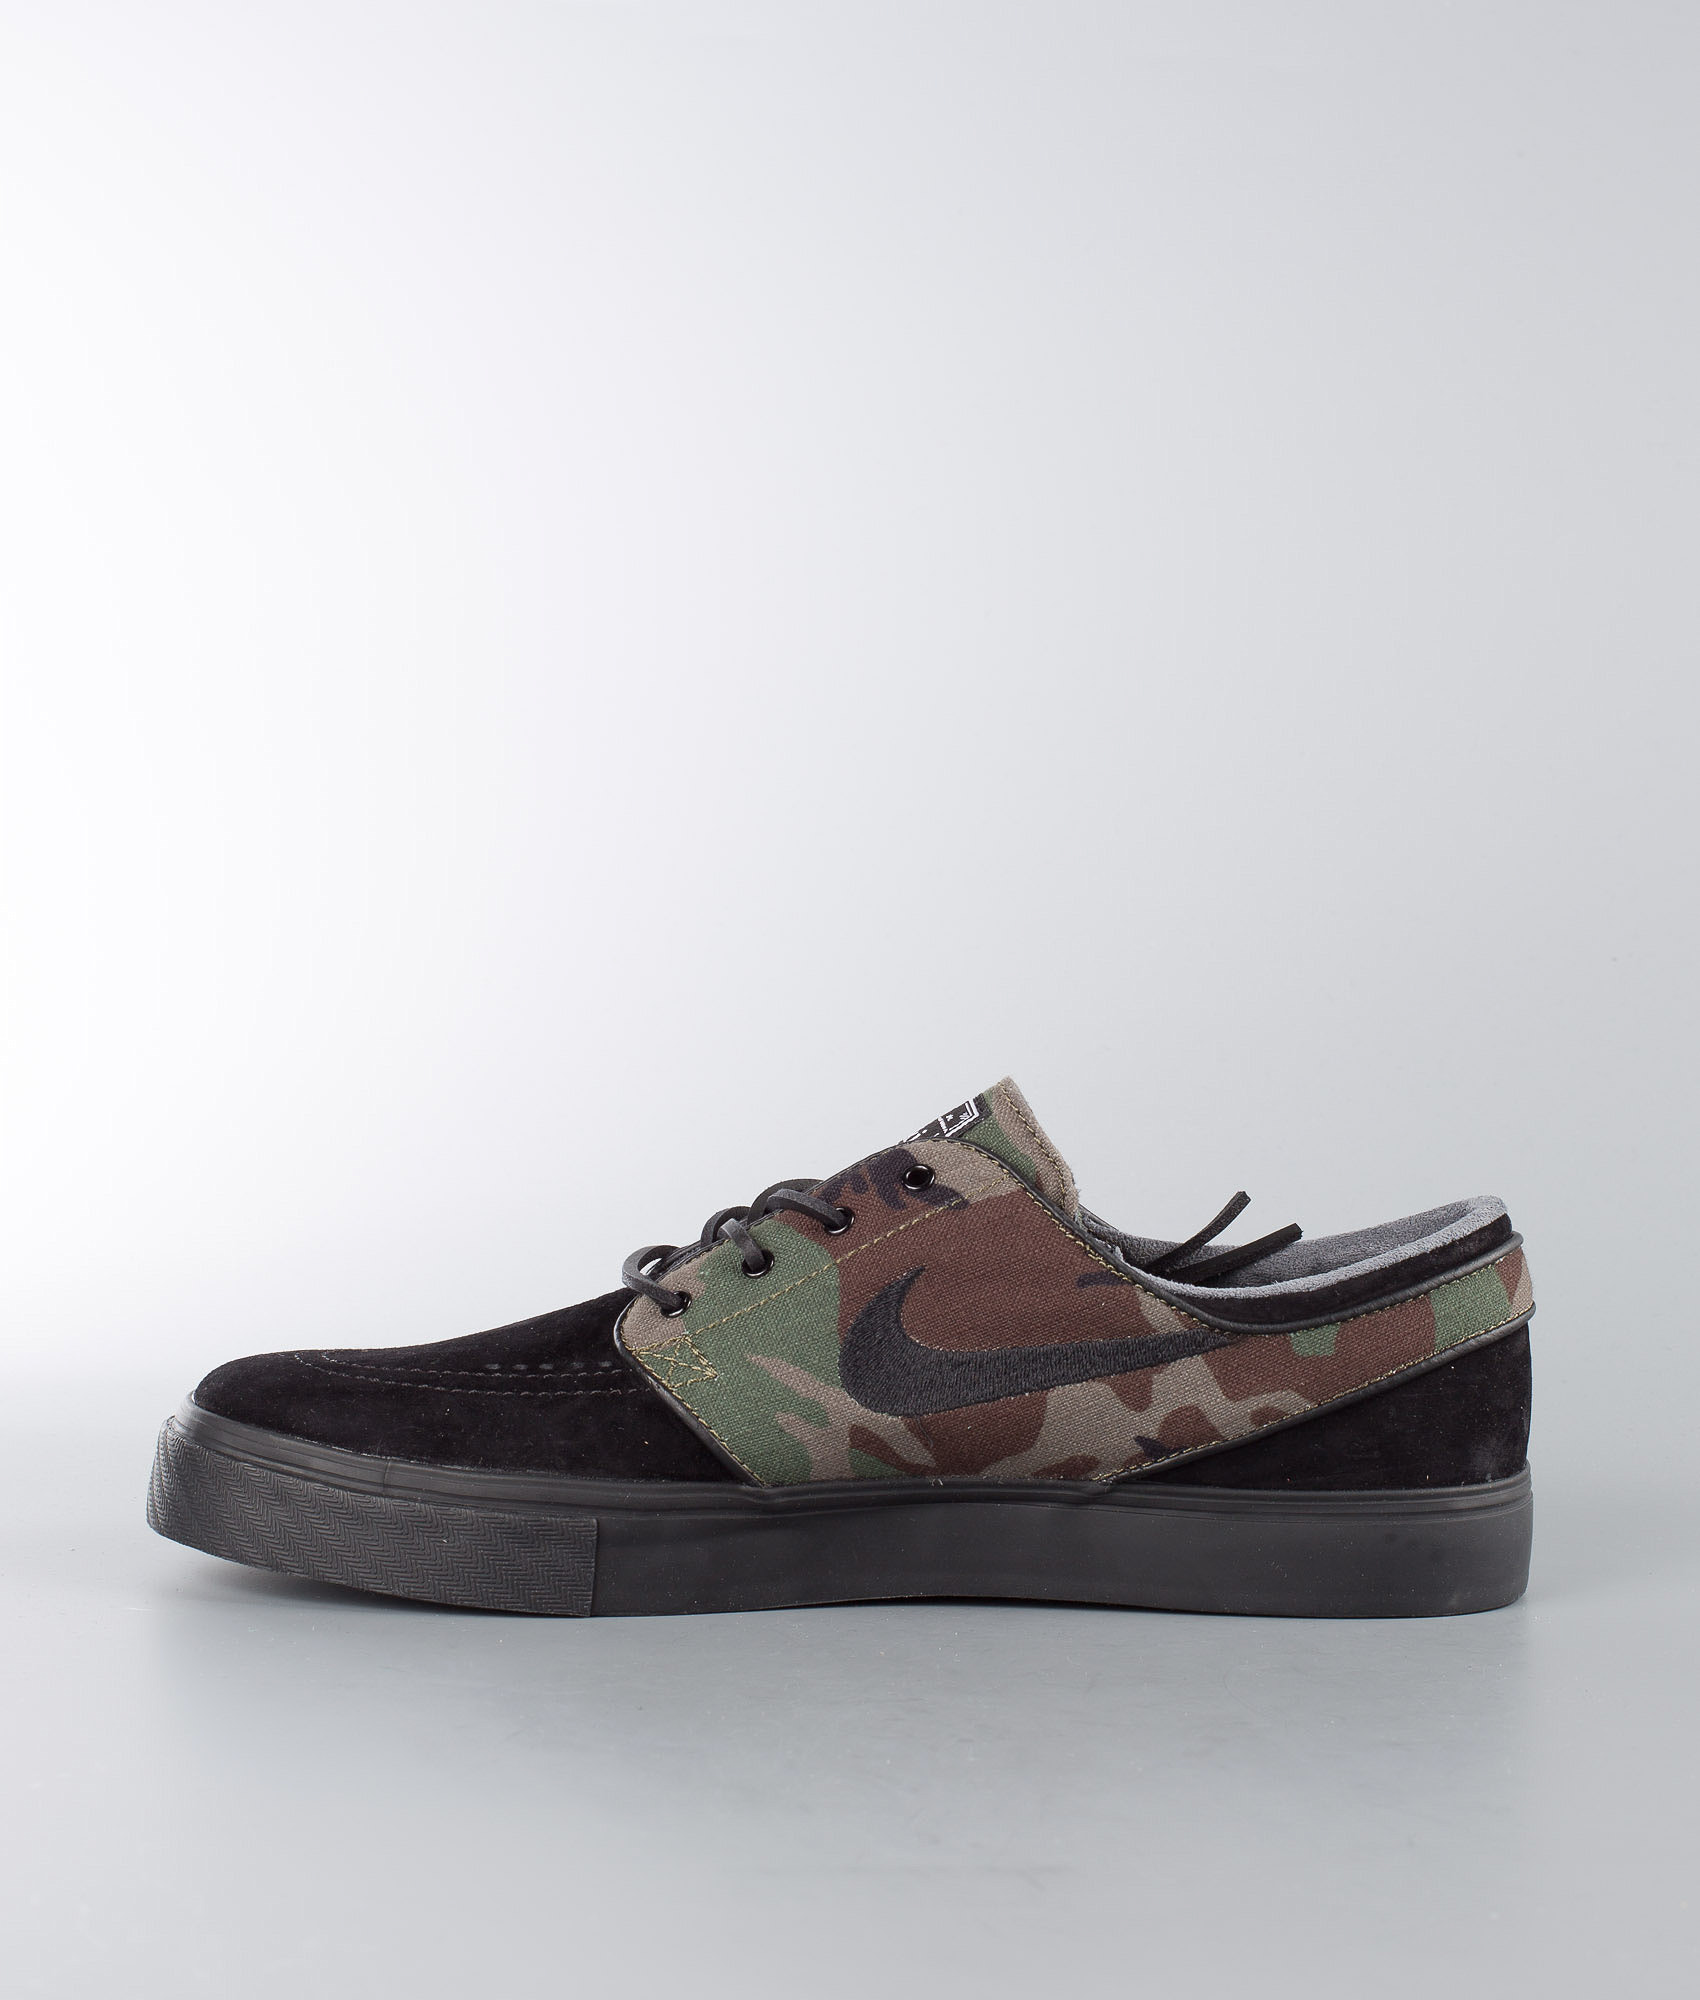 6578131c0eedd5 Nike Zoom Stefan Janoski OG Shoes Black Black-Medium Olive-White ...